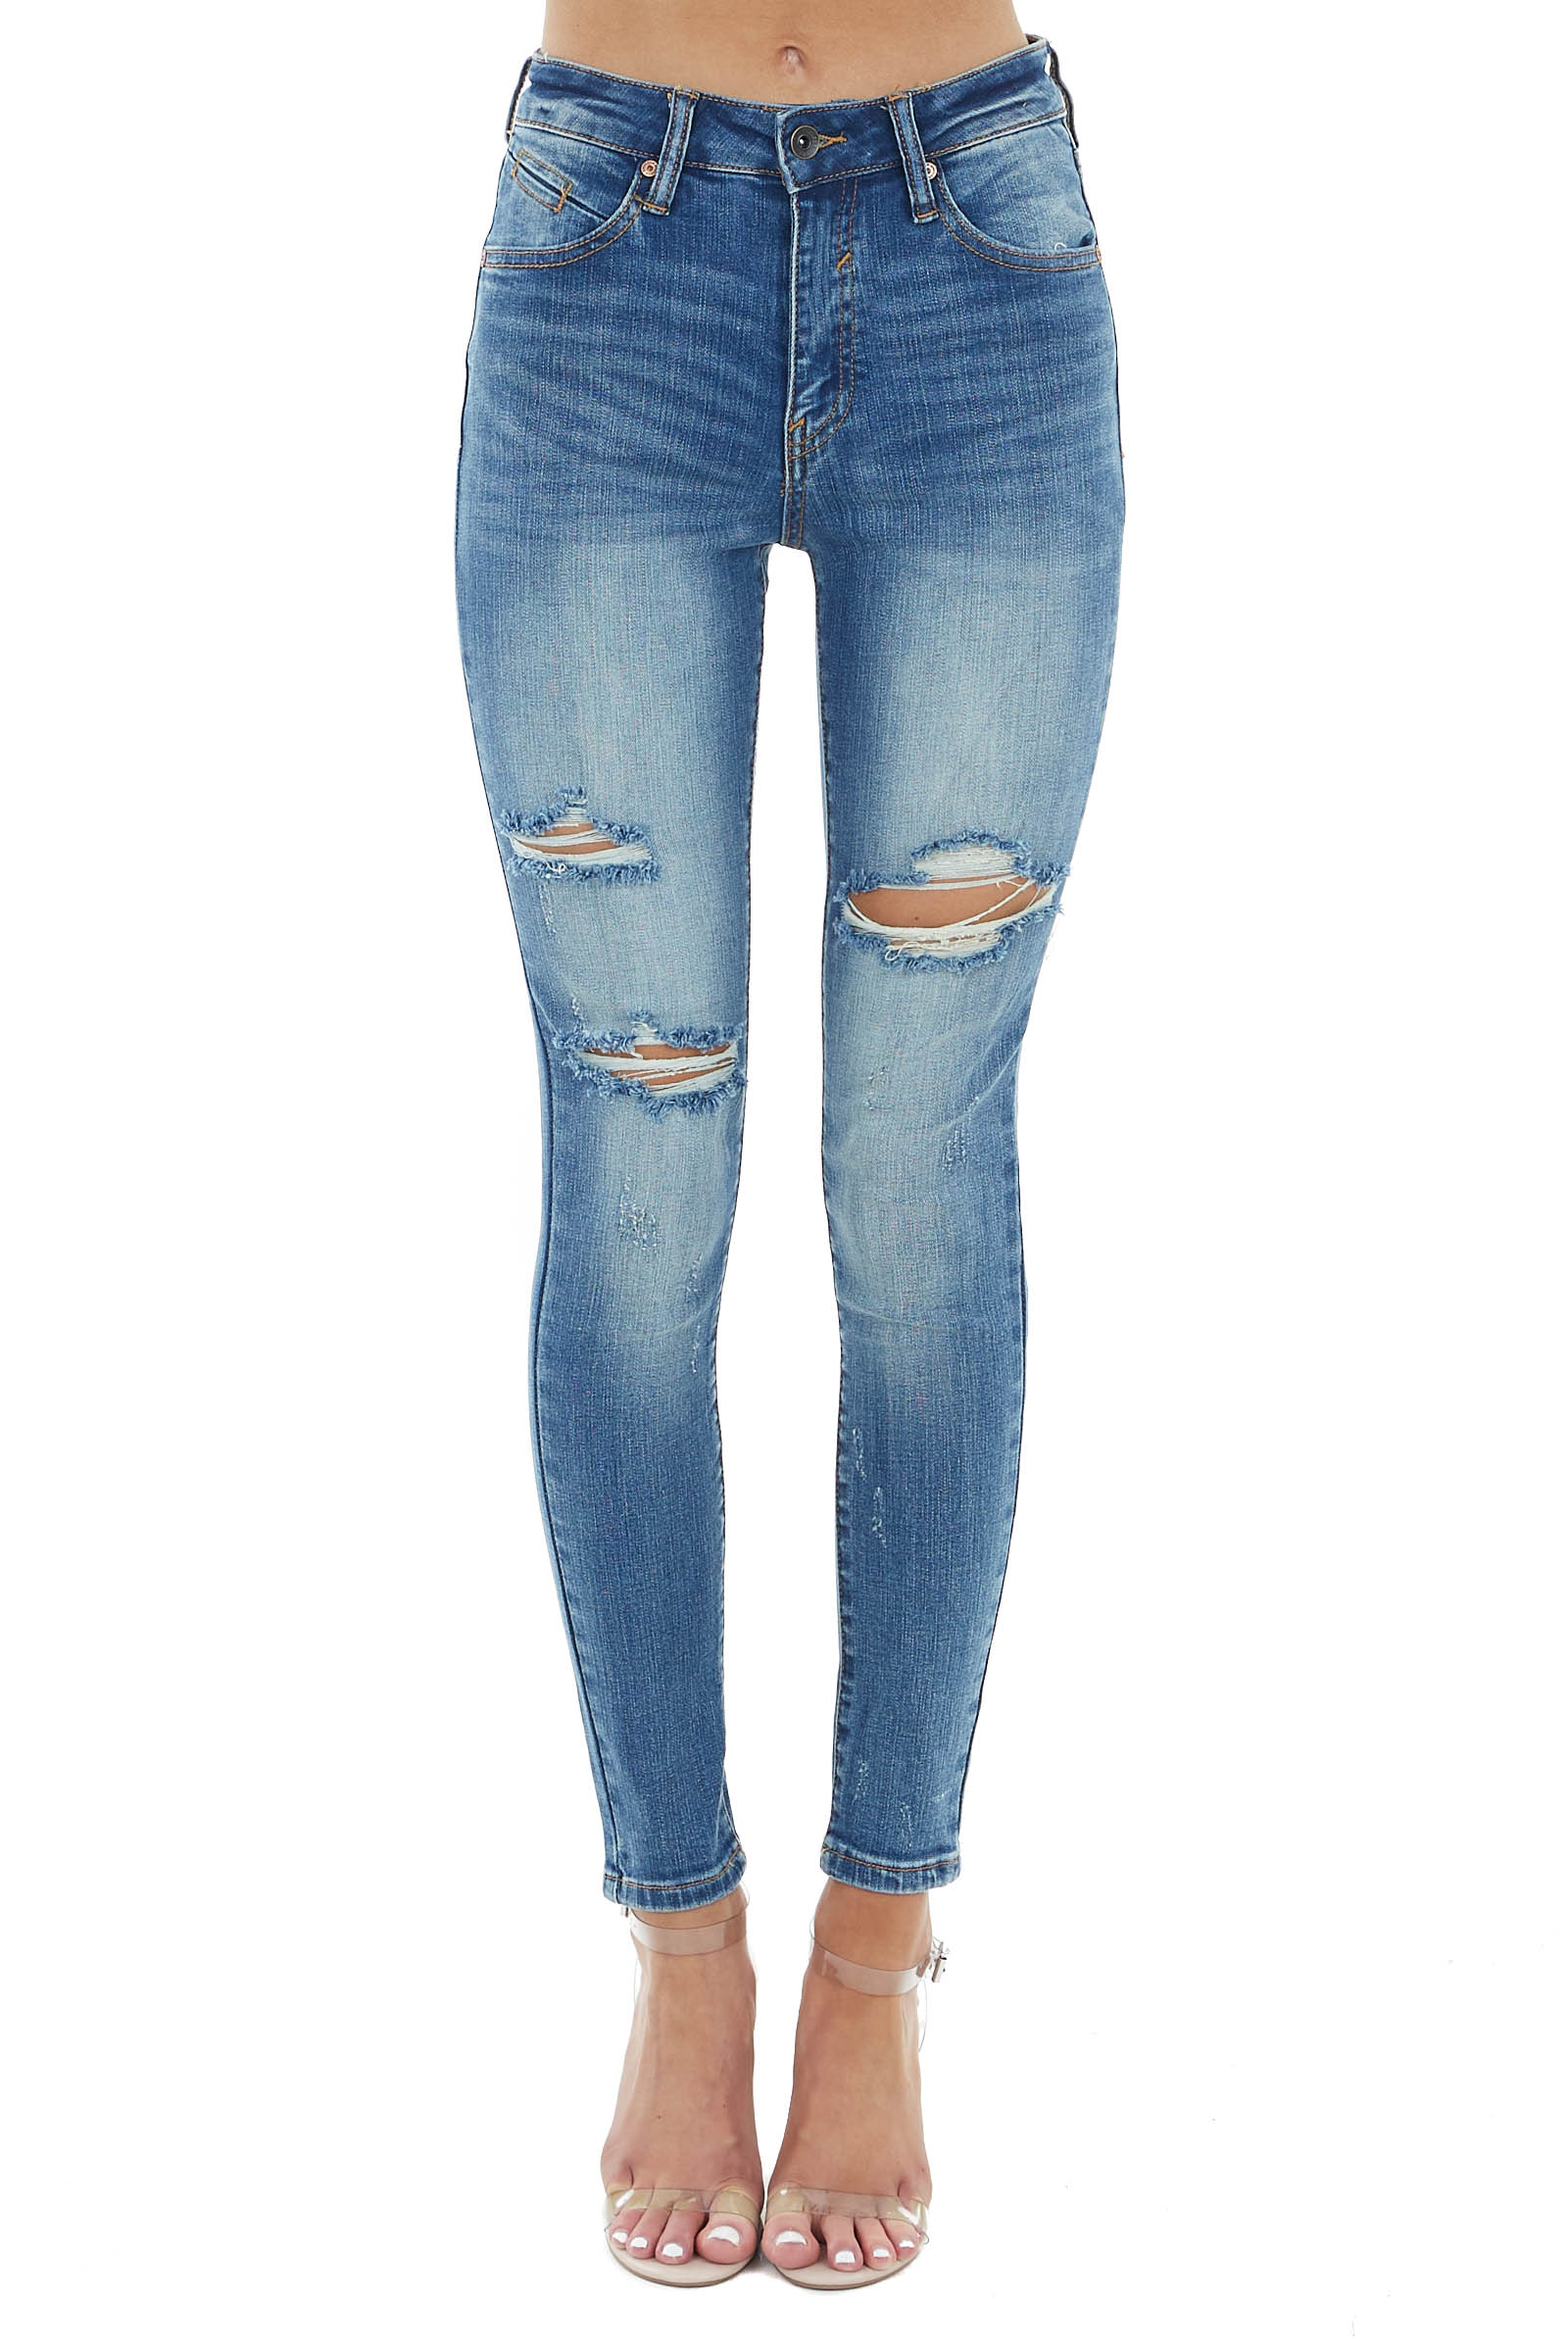 Medium Dark Wash High Rise Skinny Jeans with Ripped Knees